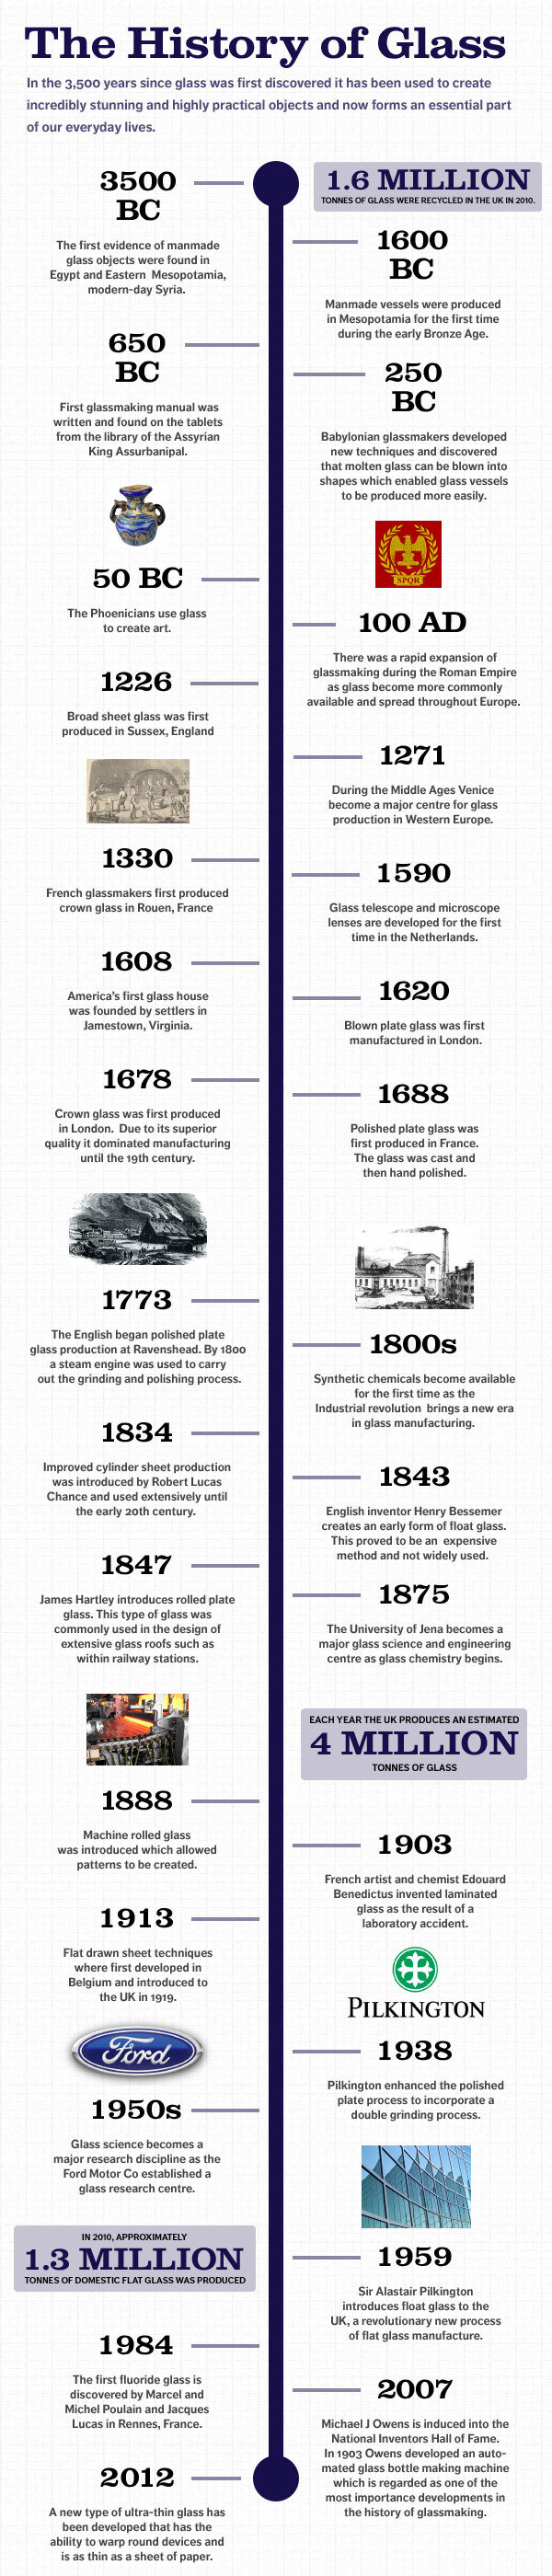 The History of Glass by Kingfisher Windows